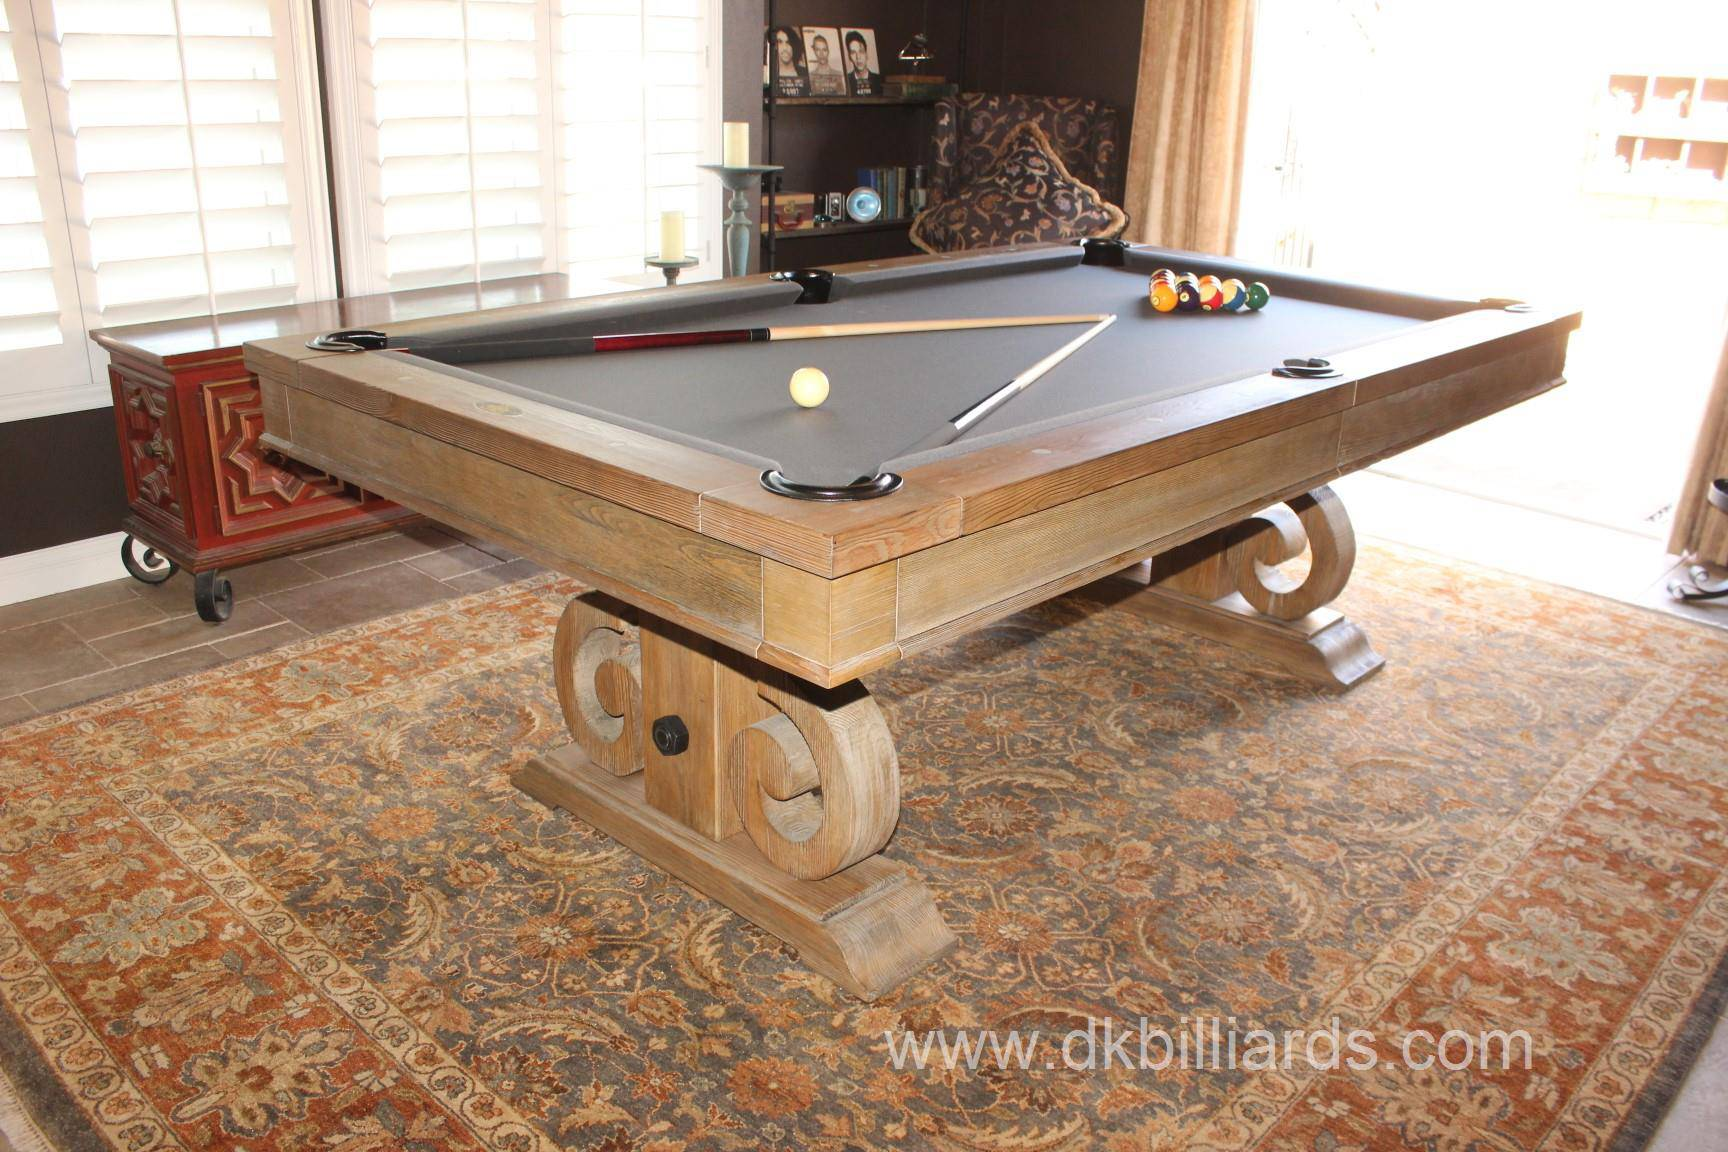 Attrayant ... Davenport Rustic Dining Conversion Pool Table With Charcoal Felt We  Delivered To Yorba Linda, California. The Davenport Has An Artisan Style  Design With ...